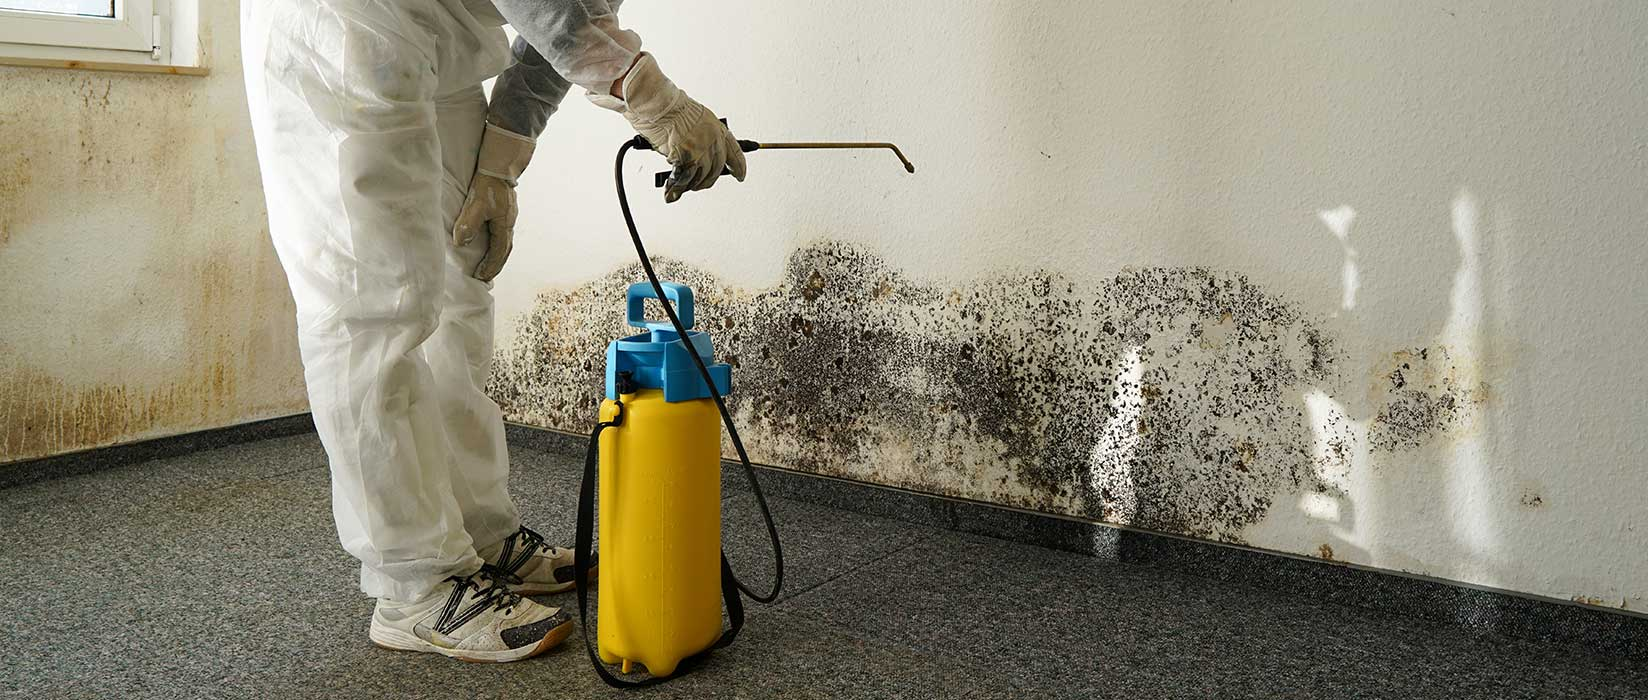 Home Page - Mold Removal Ottawa